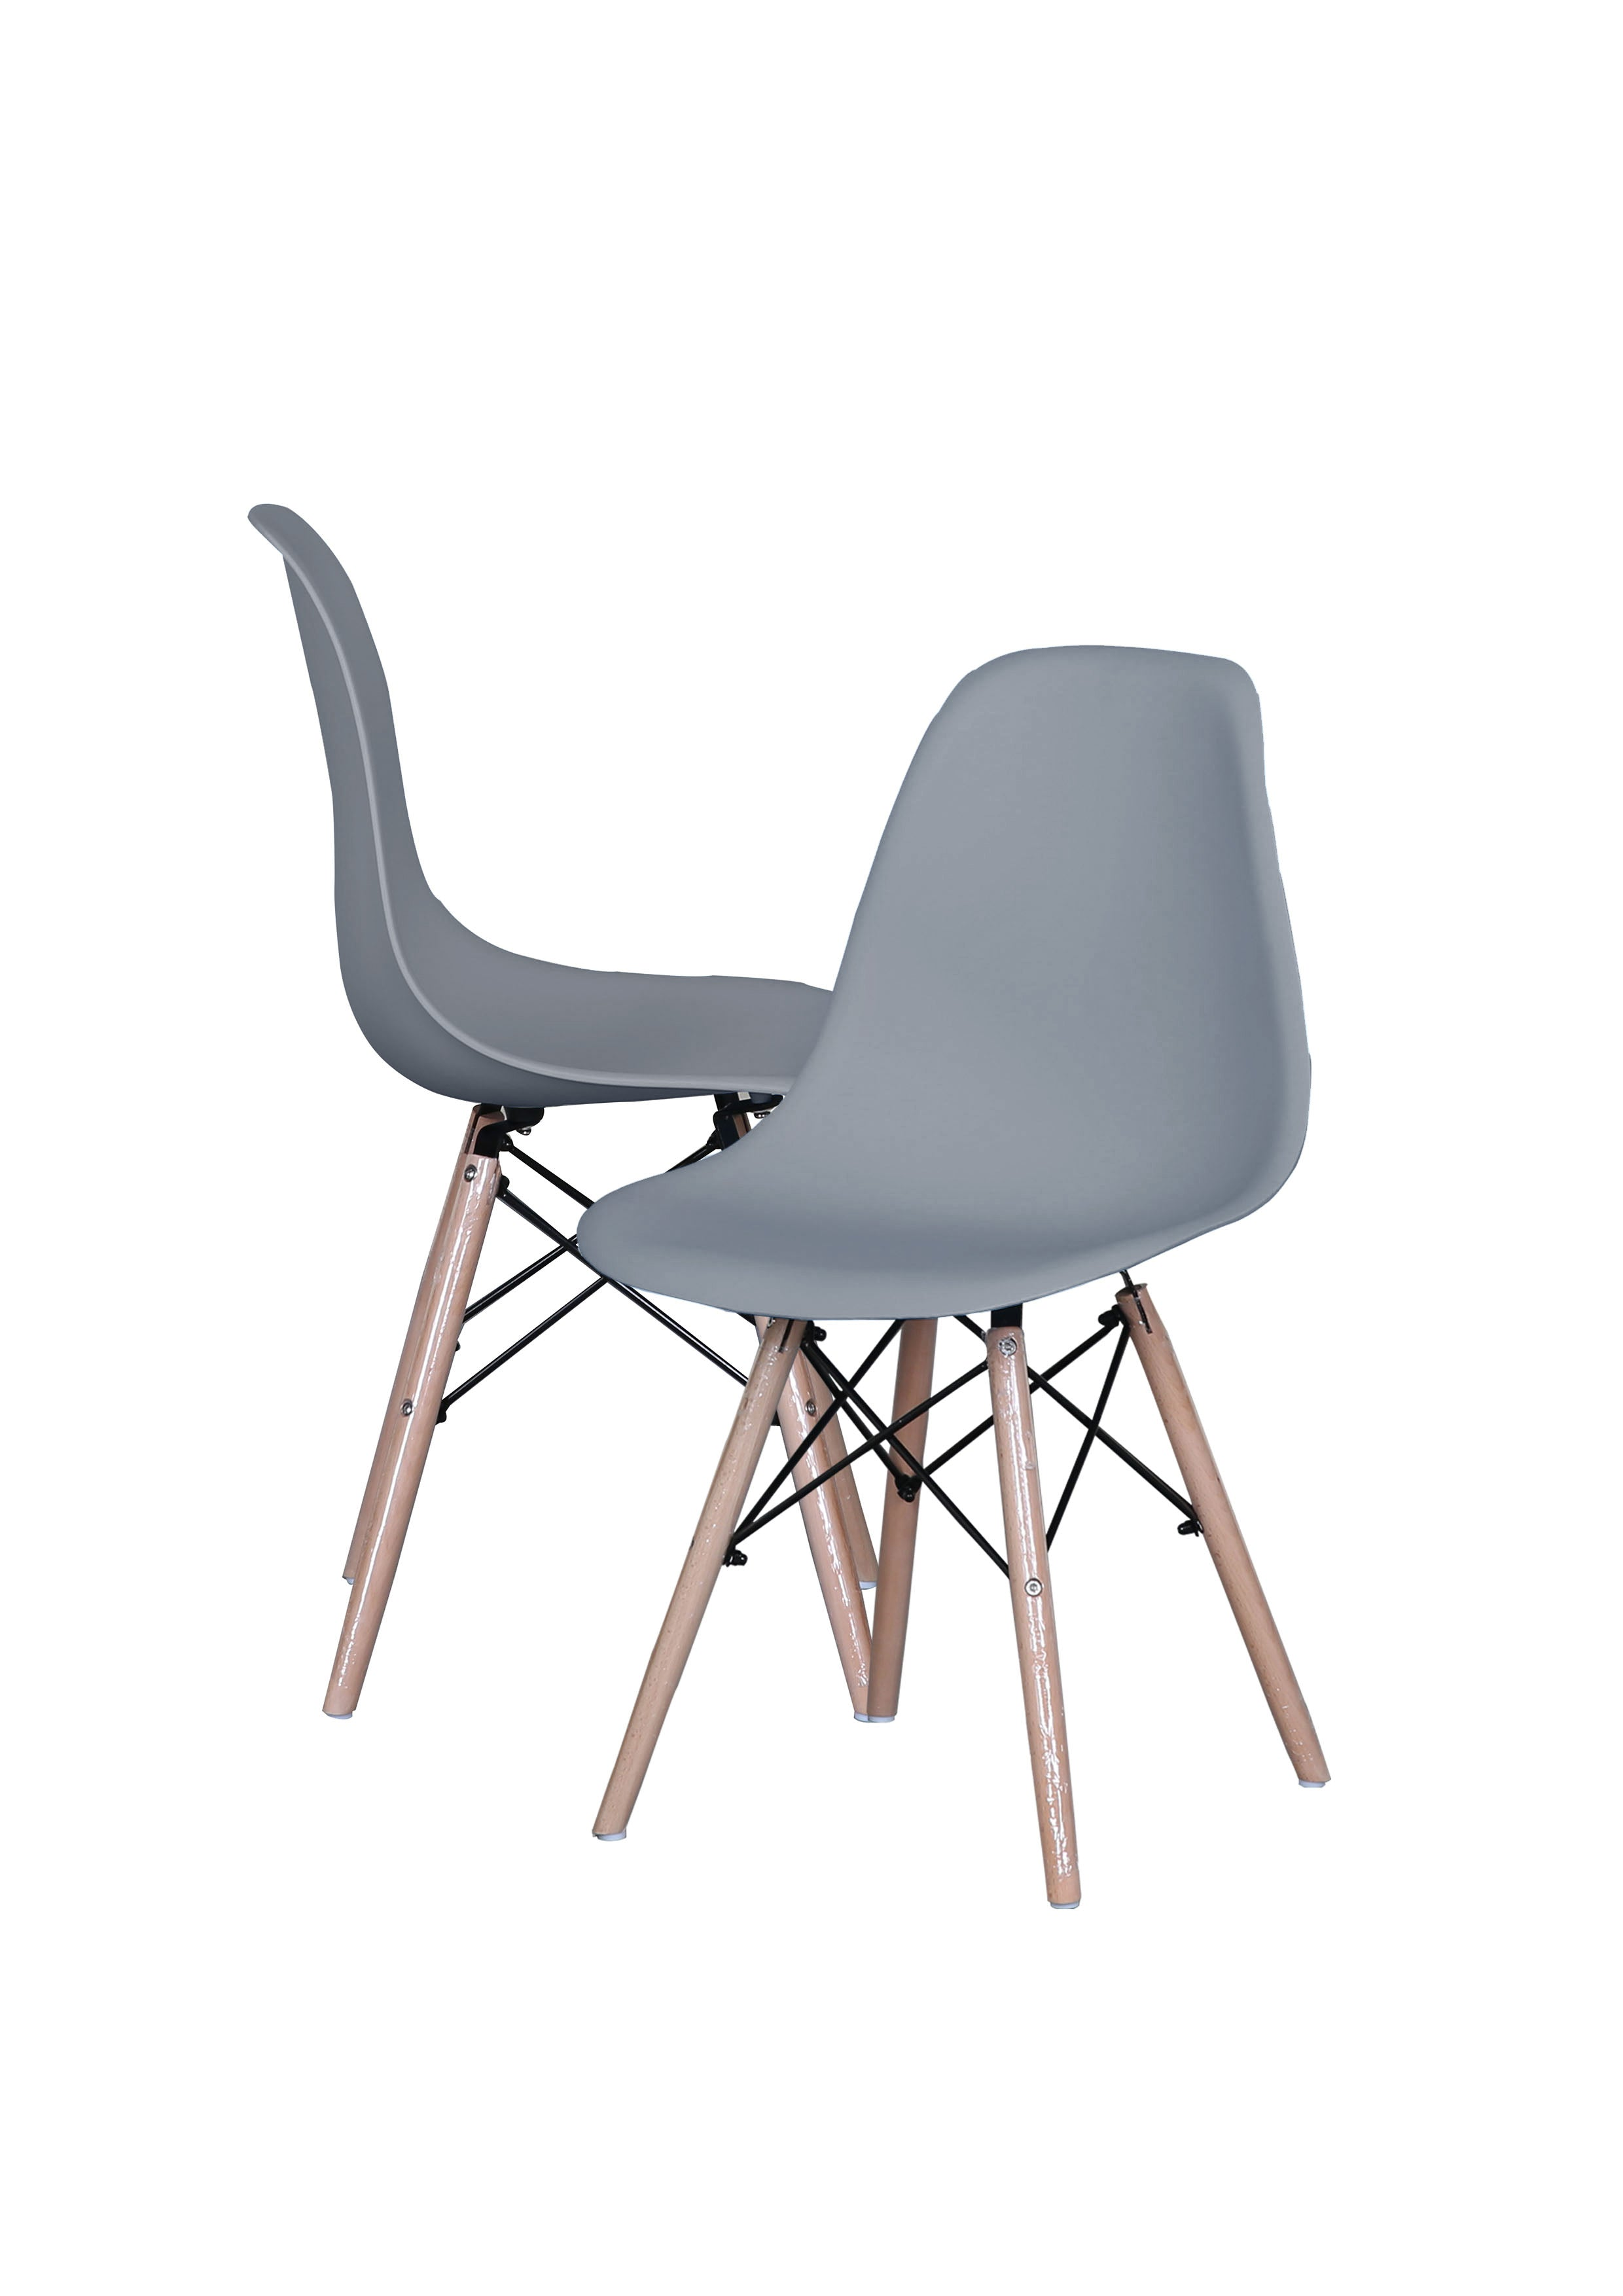 Gentil Ray Set Of (2) Classic Modern Eames Inspired Chairs